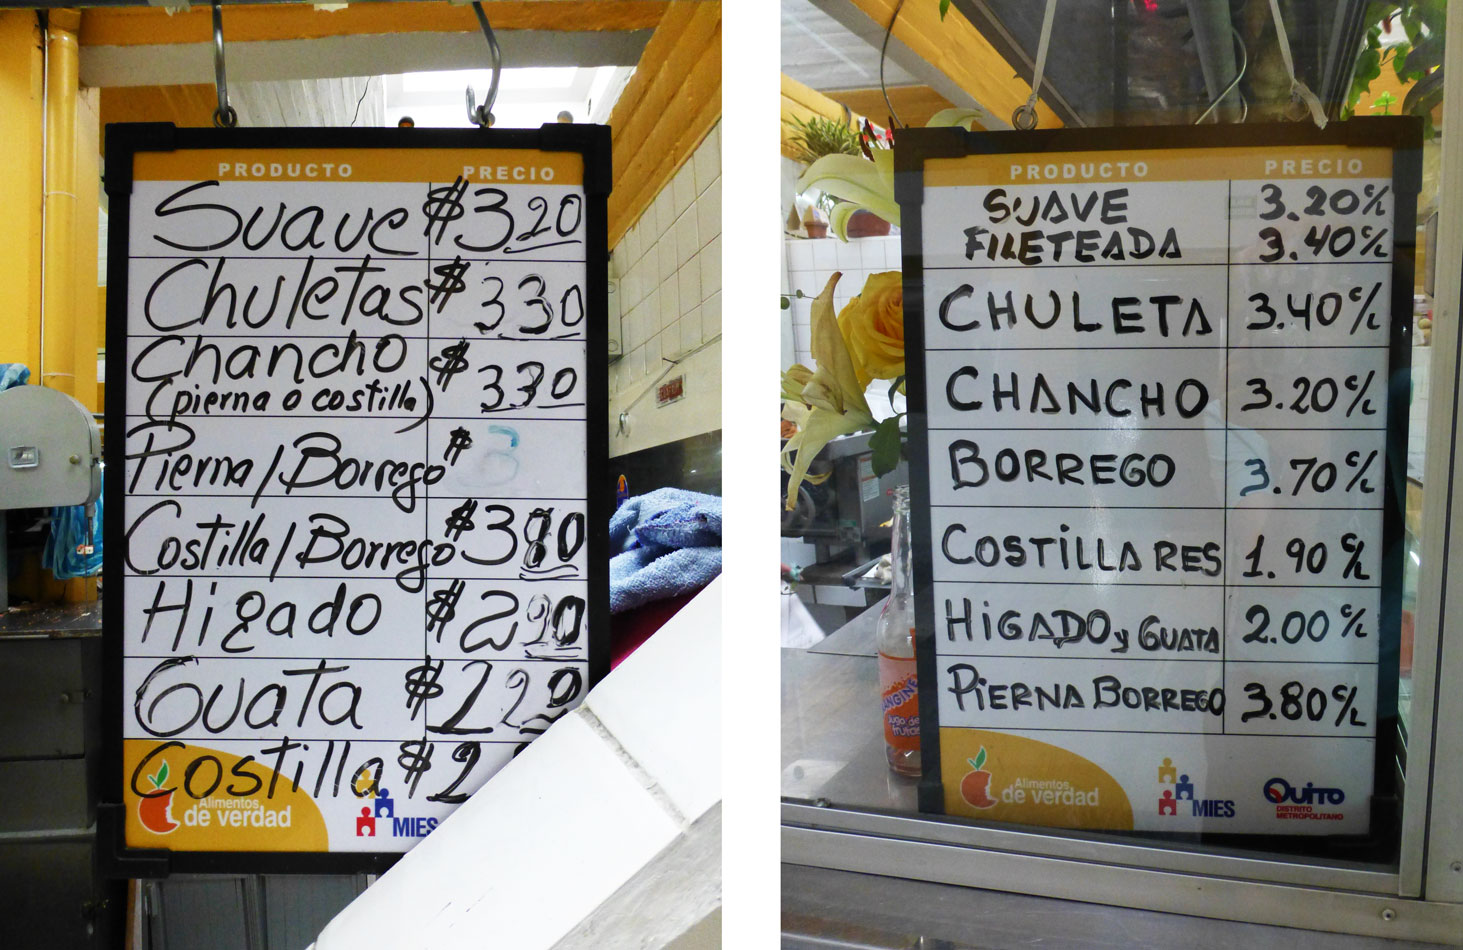 Here are two price lists from 2 different vendors.